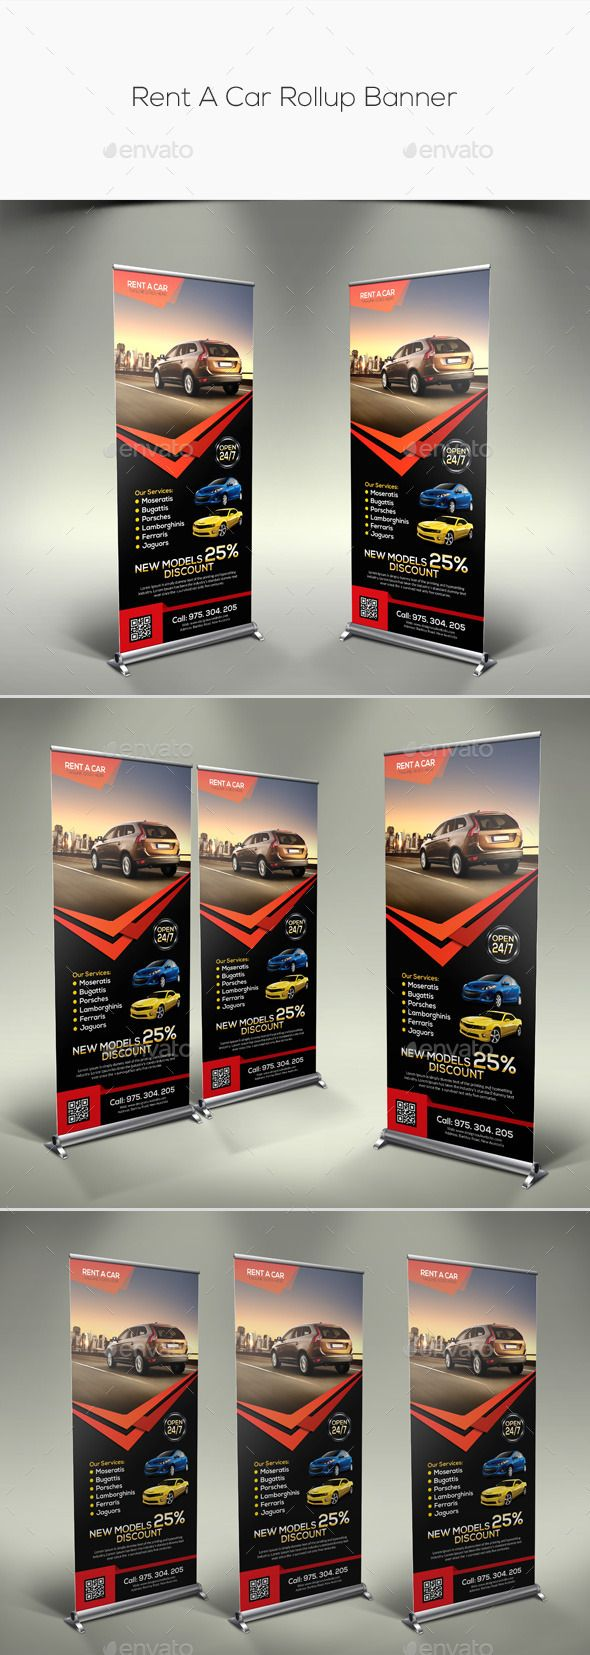 Fully Layered Adobe Photoshop Cs5 1 Layout Designs Cmyk Color Mode 300 Dpi Resolution Size 30 X70 Rollup Banner Rent A Car Banner